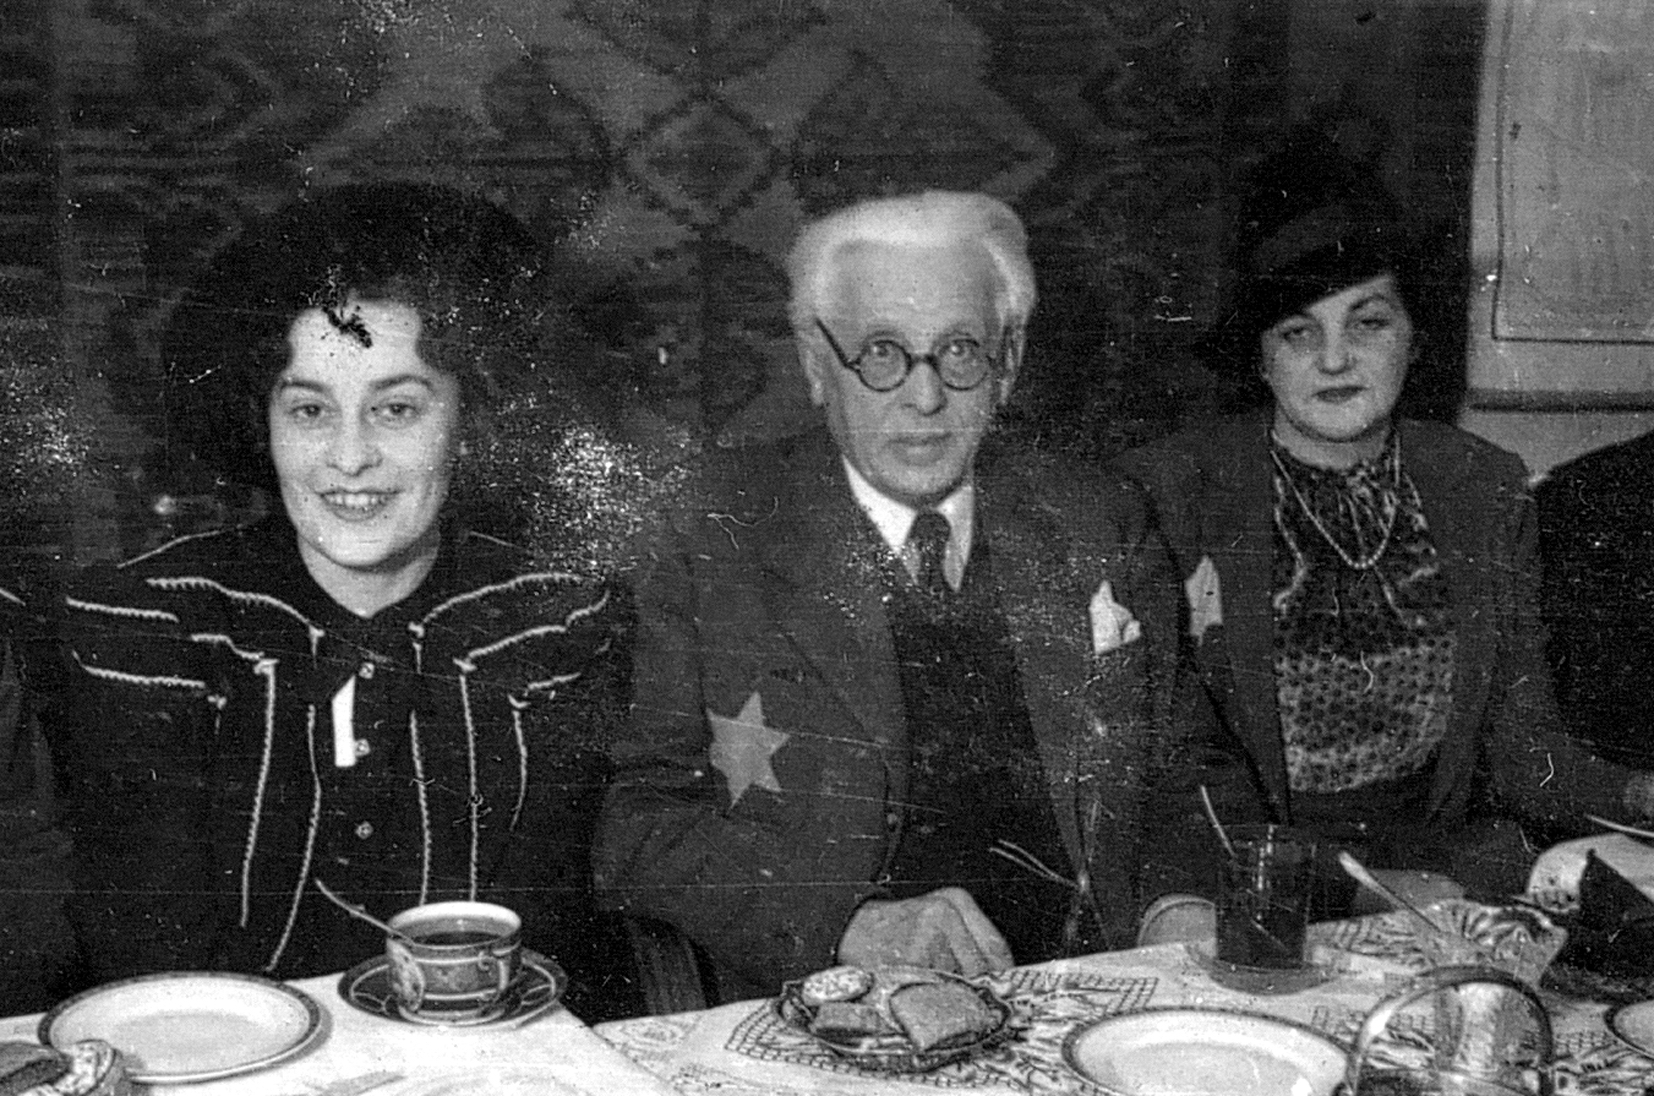 Lodz, Poland, Chairman of the Judenrat Rumkowski, his wife Regina to his left, his brother's wife Helena to his right, at an event in the ghetto